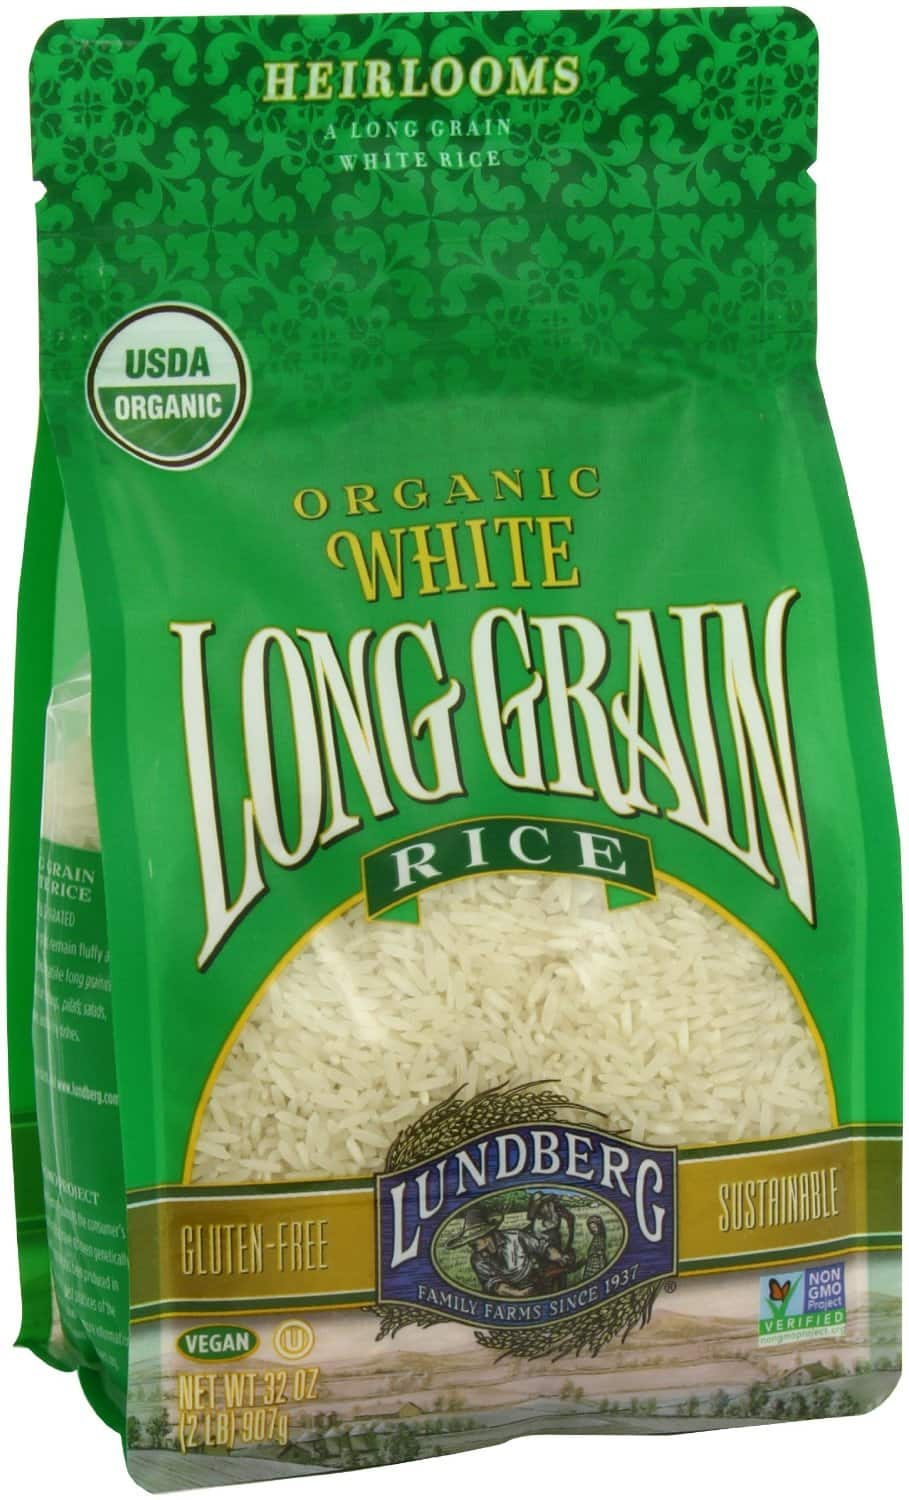 6-pack of 32oz Lundberg Organic White Long Grain Rice (12lb total): $17.16 (or less) + FS @ Amazon (prime only)